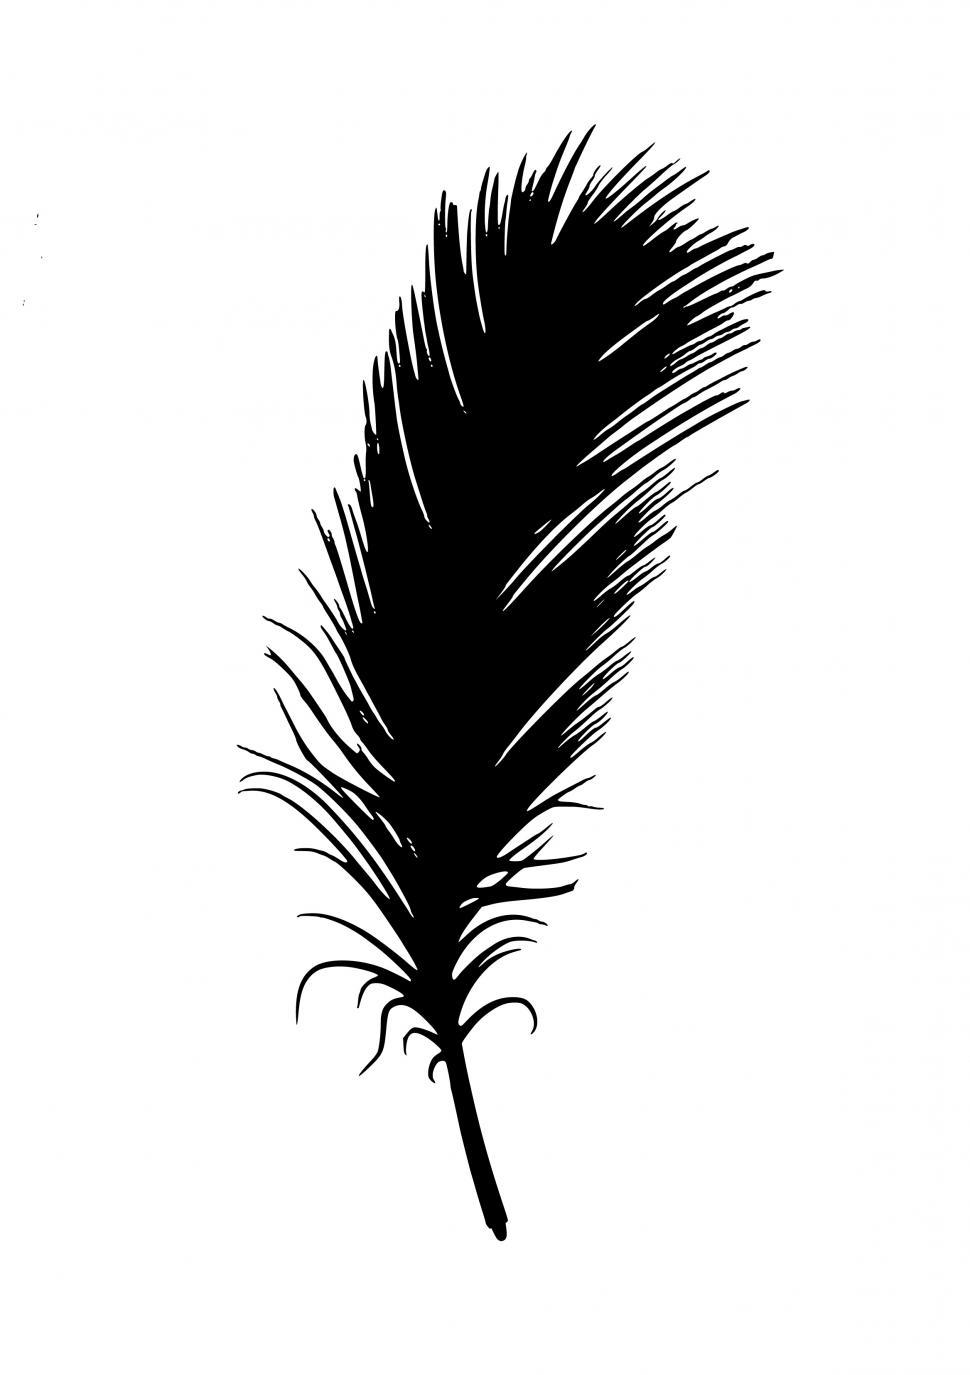 Download Free Stock HD Photo of feather Black Silhouette  Online